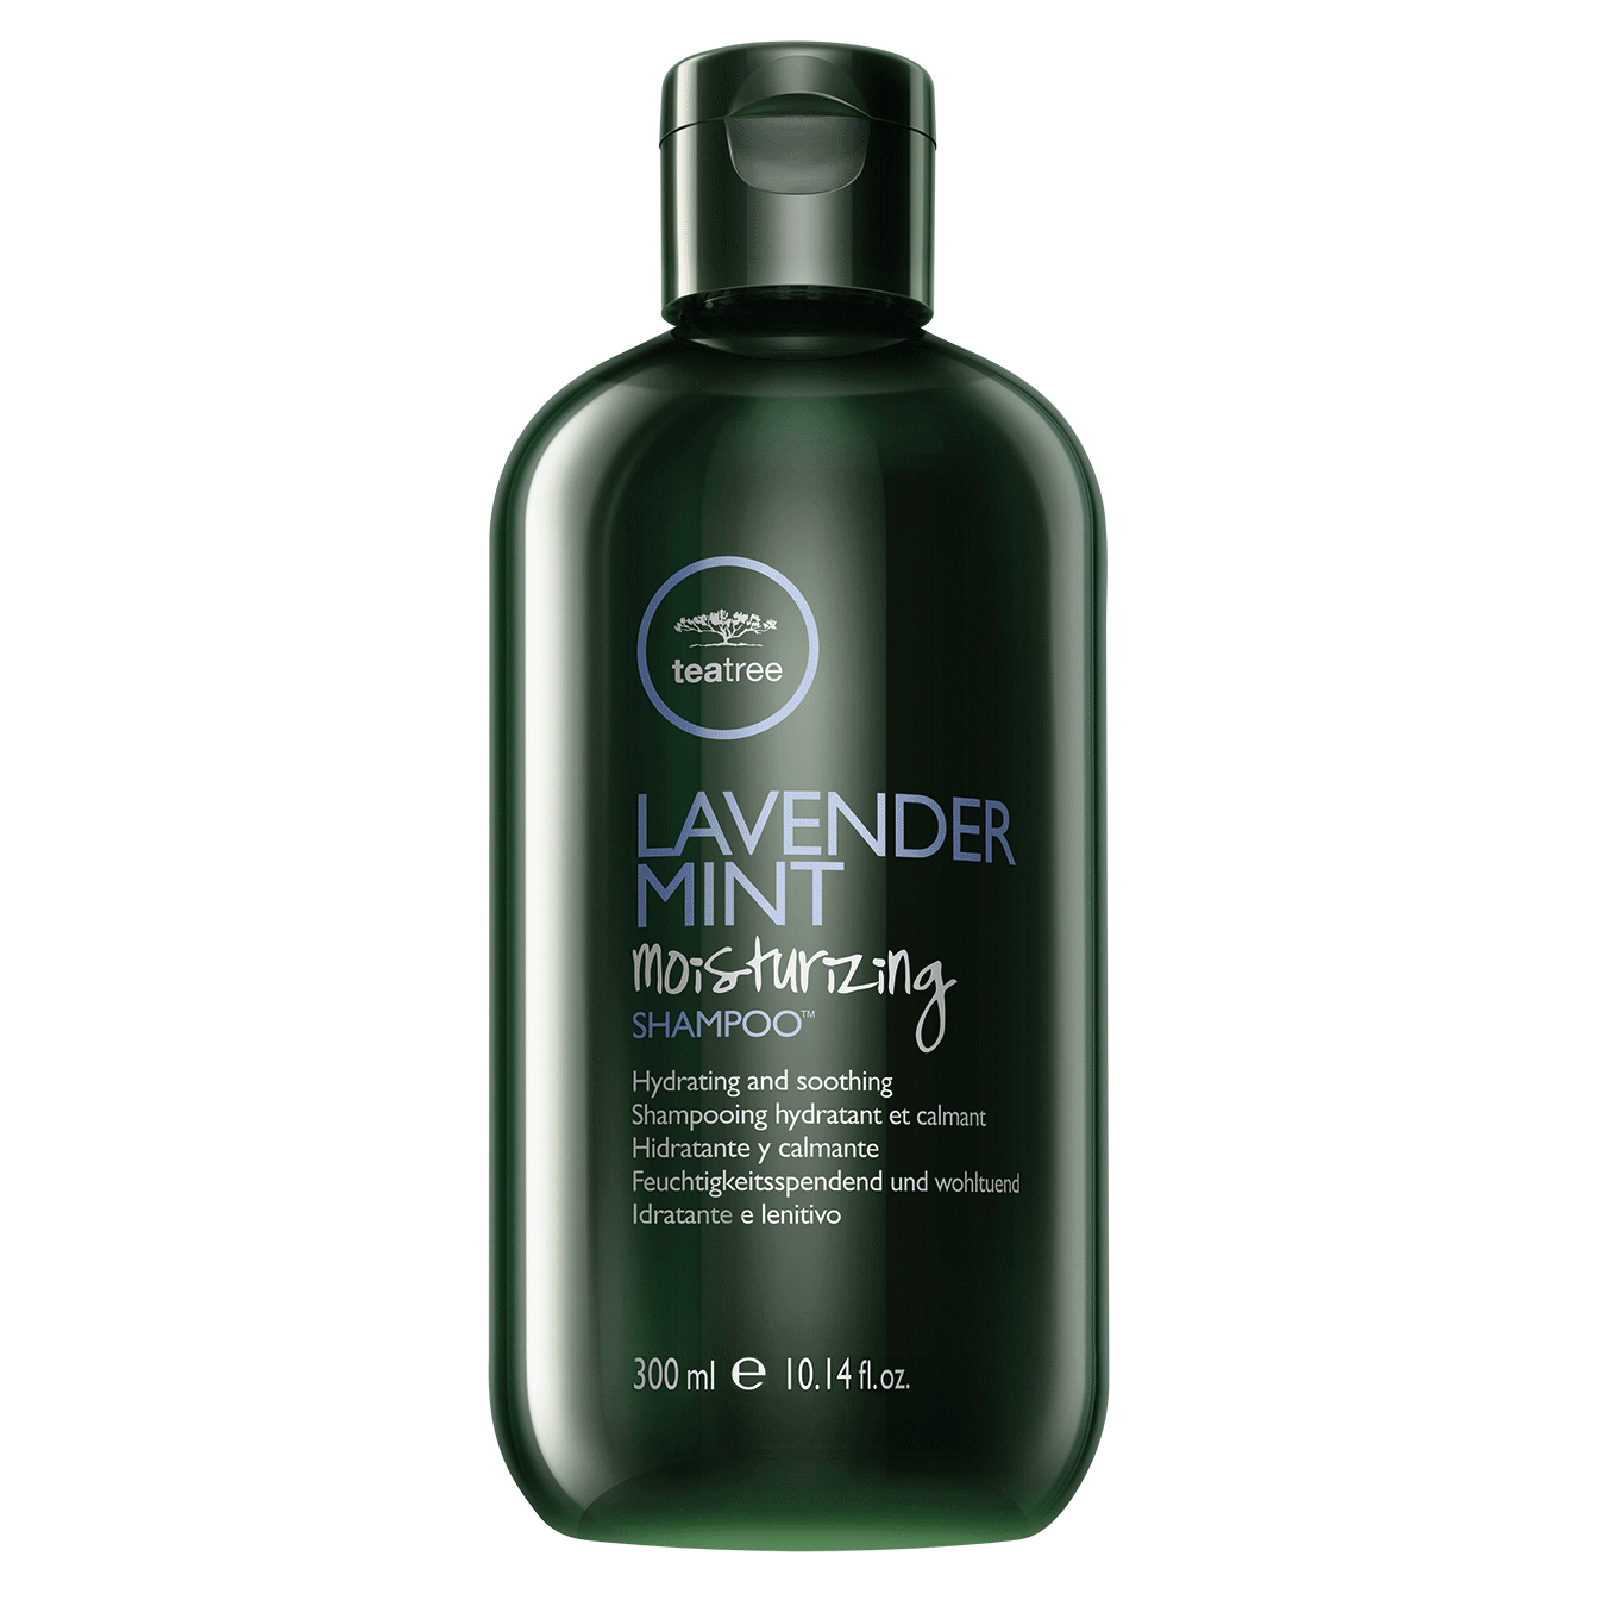 Tea Tree Lavender Mint - Moisturizing Shampoo